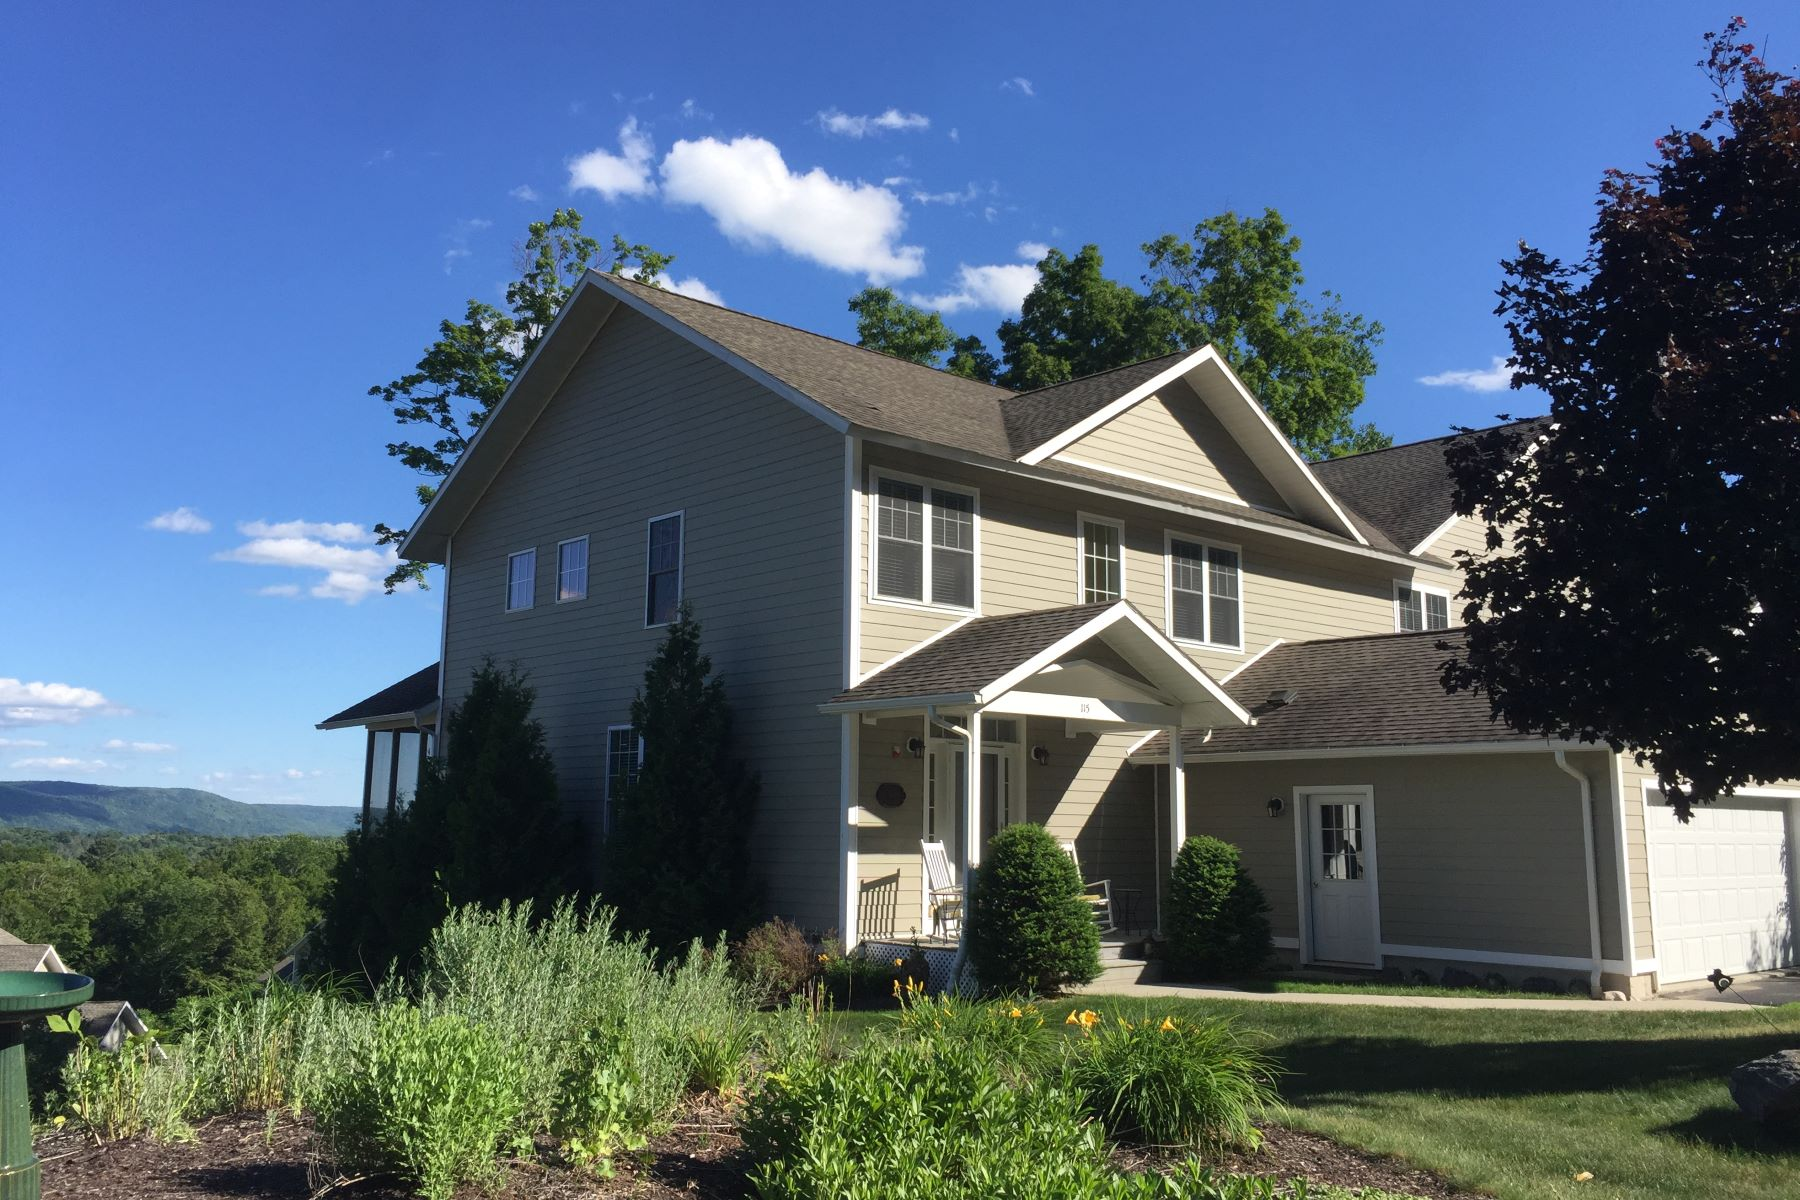 Single Family Home for Active at The Pines Condo with Mountain Views you Have Been Waiting For 115 Alpine Trail Pittsfield, Massachusetts 01201 United States